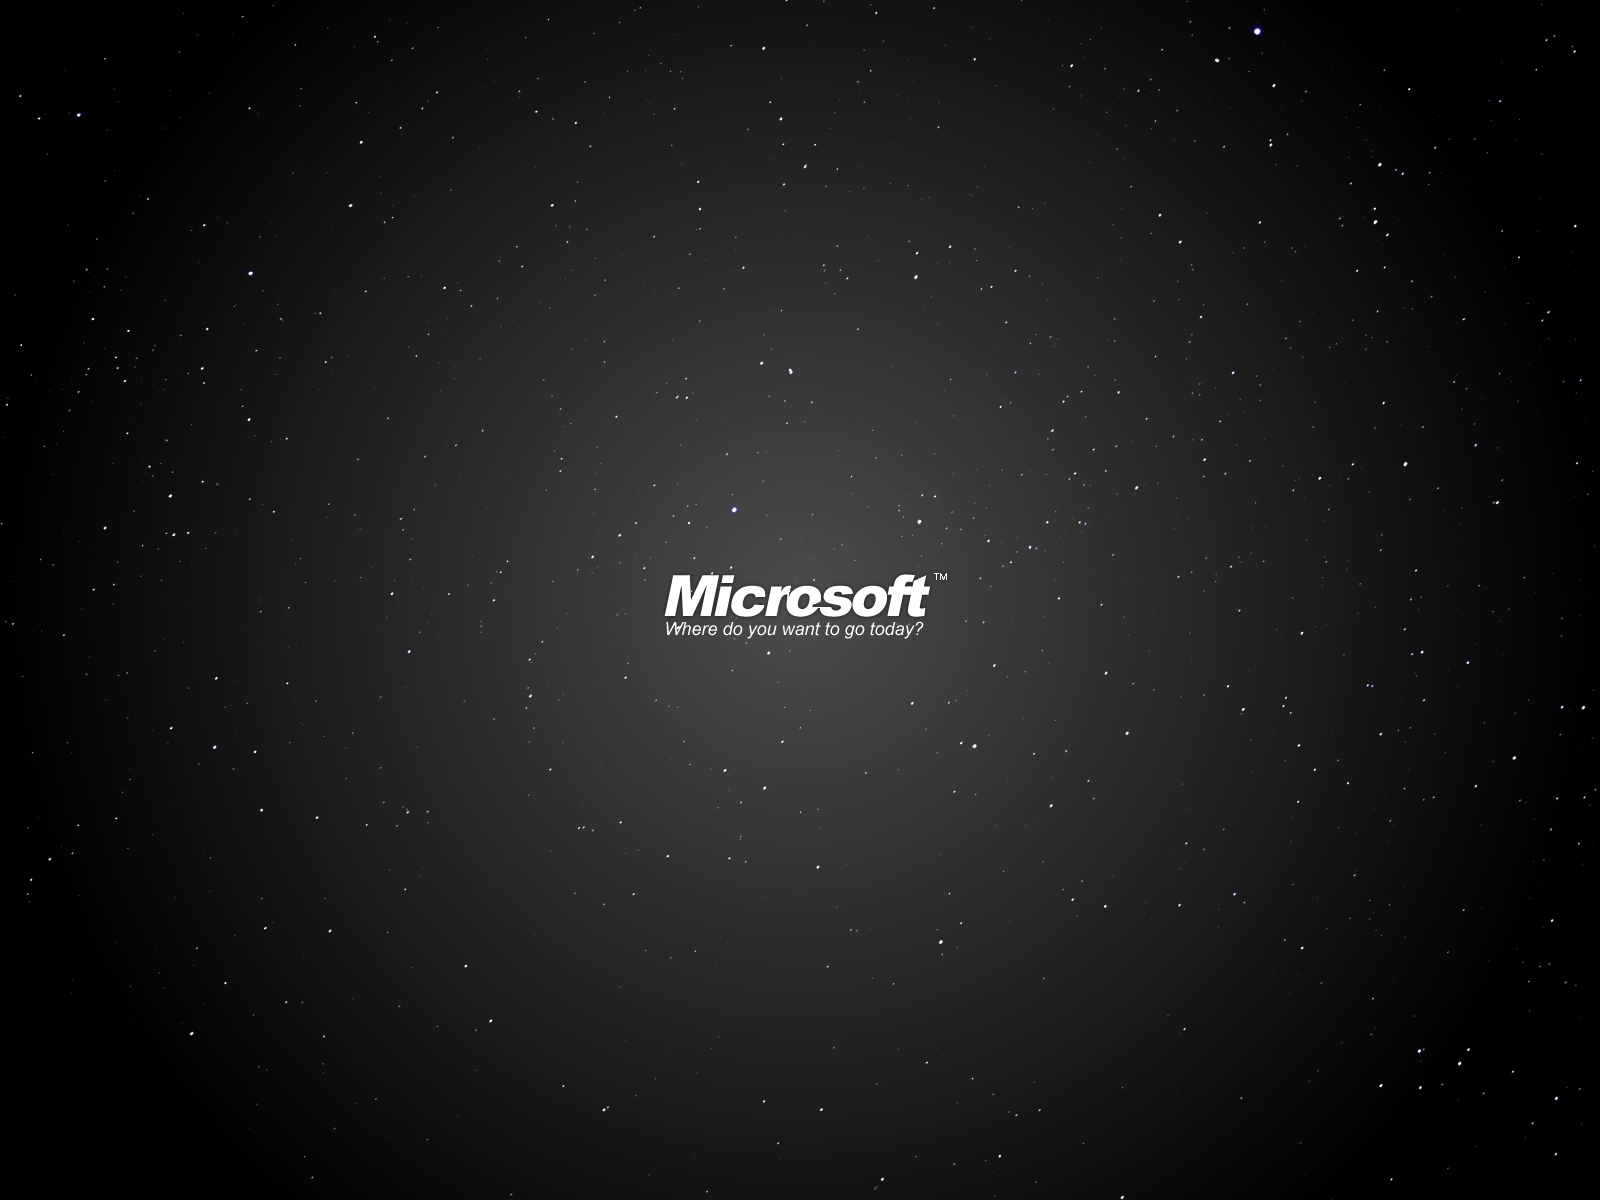 Download Microsoft Desktop Wallpaper pictures in high definition 1600x1200